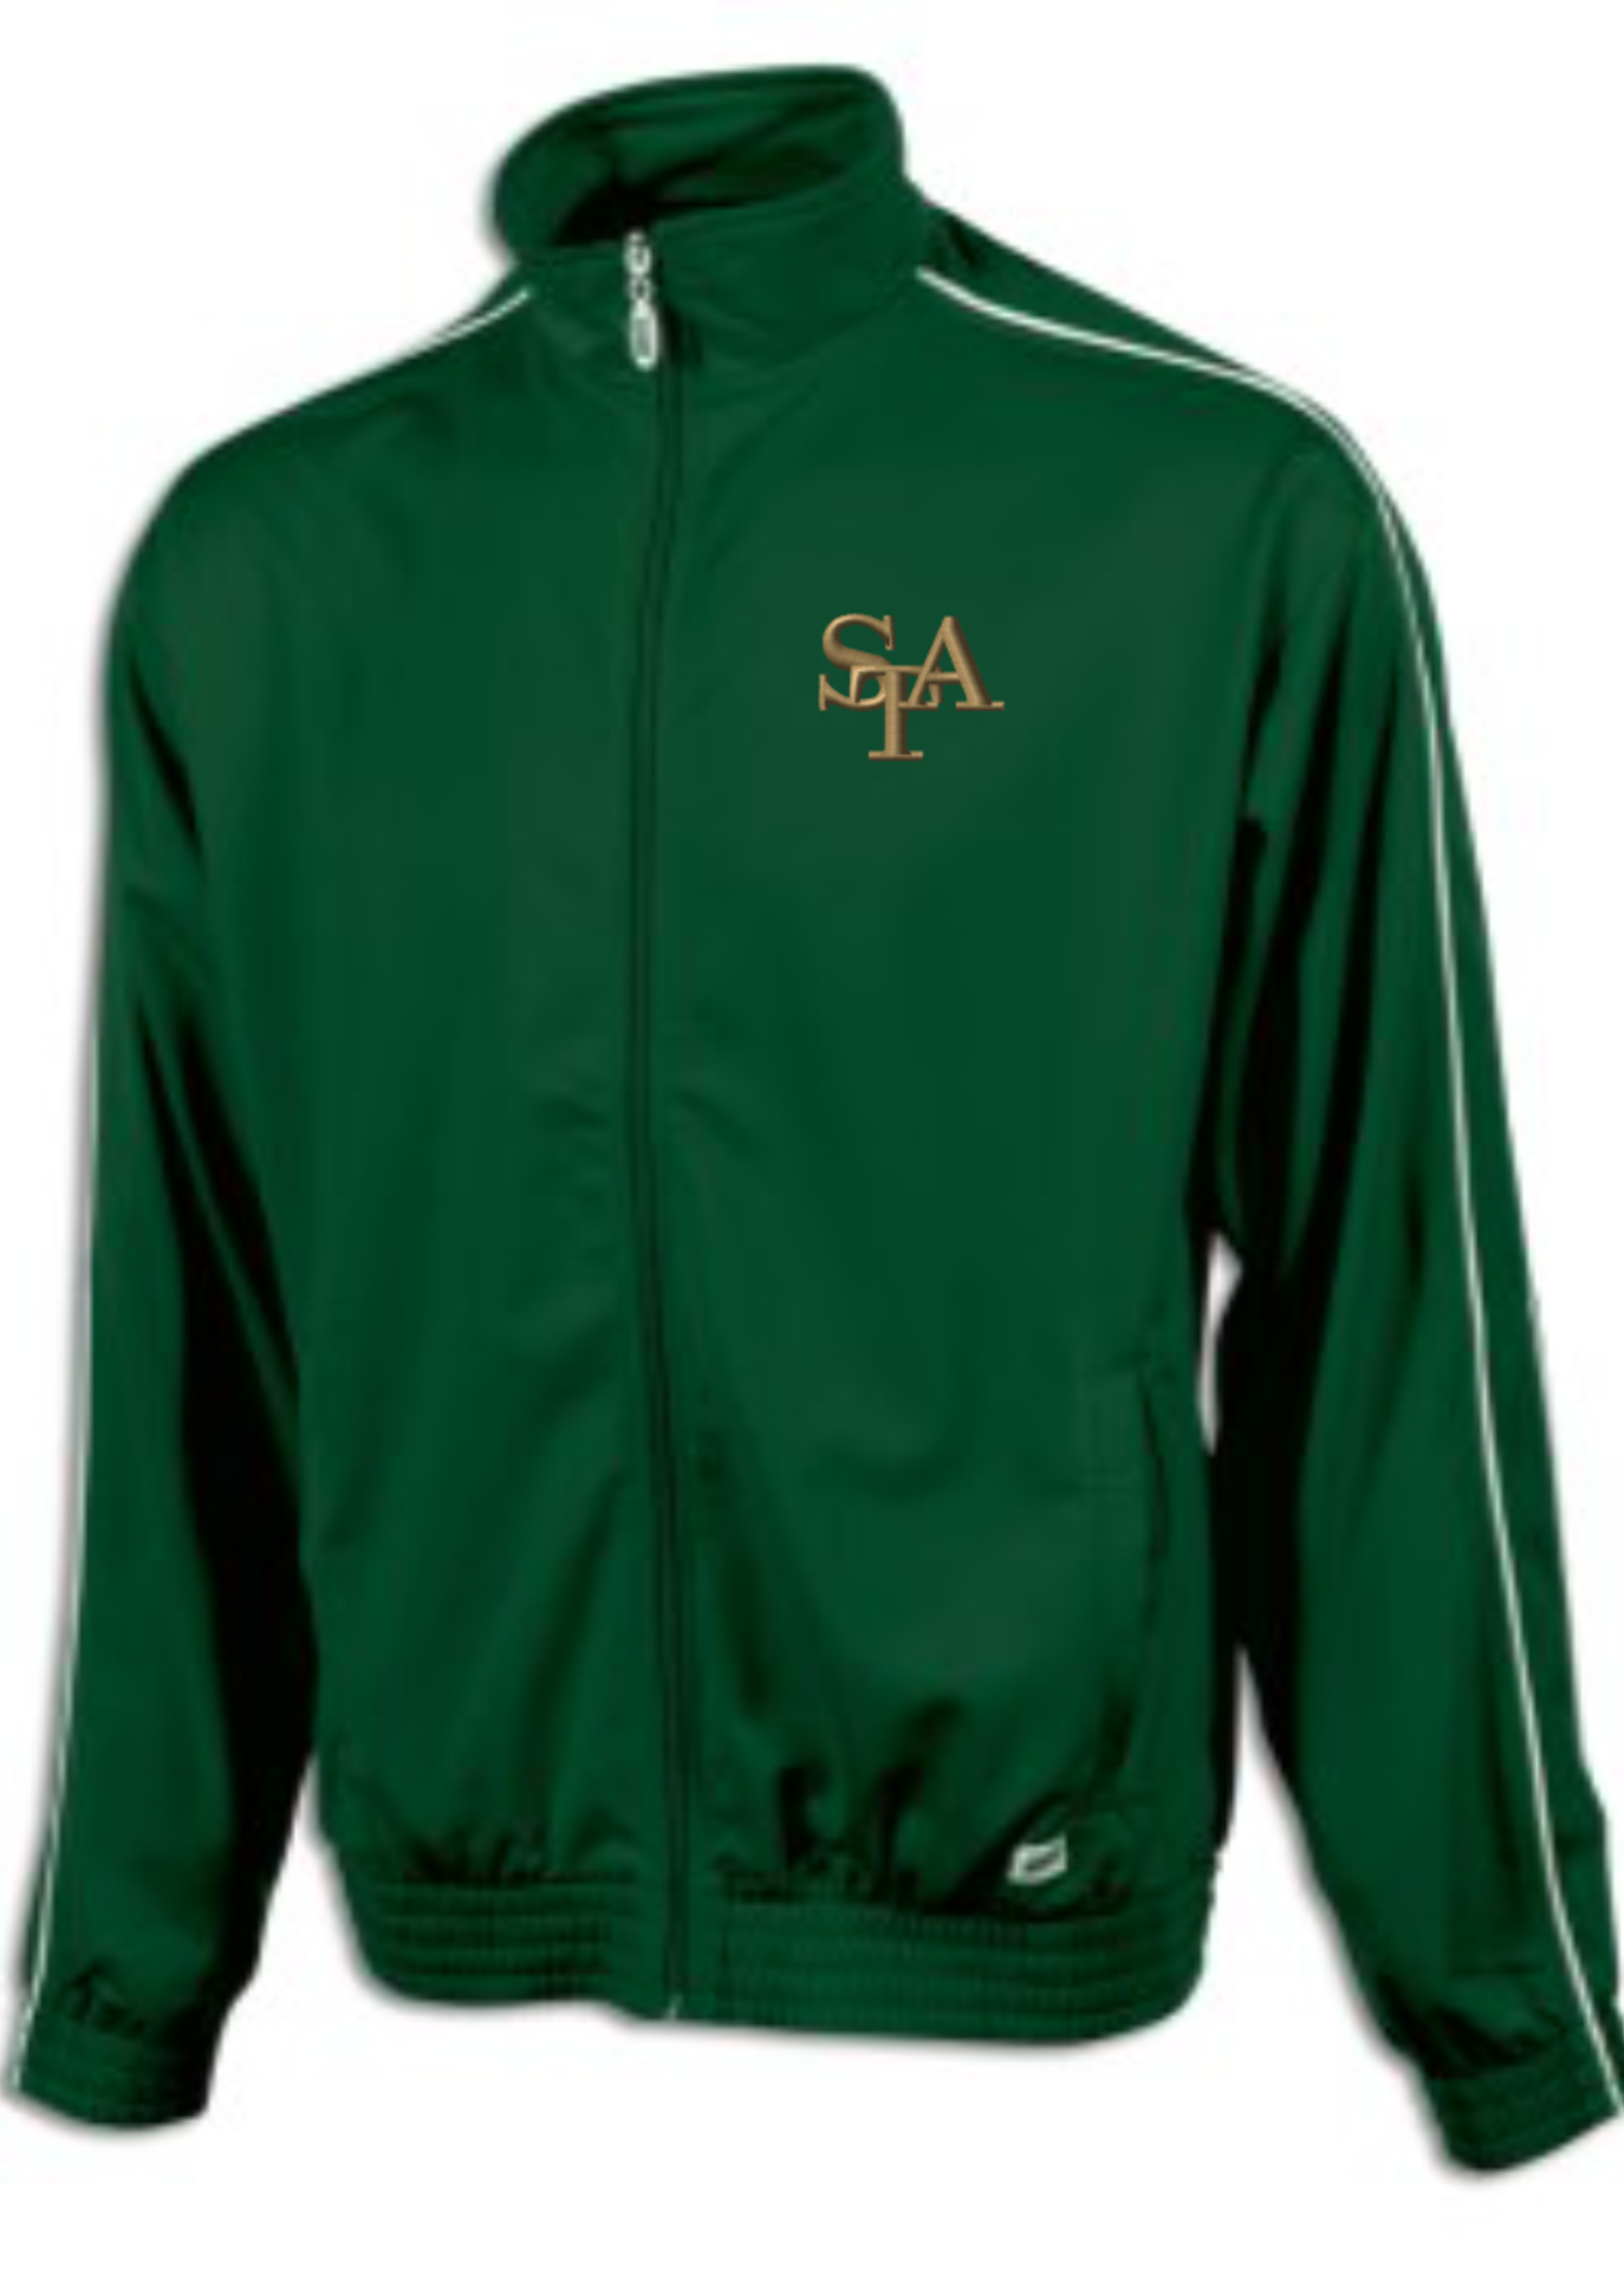 TUS STA Green Tricot Warm Up Jacket